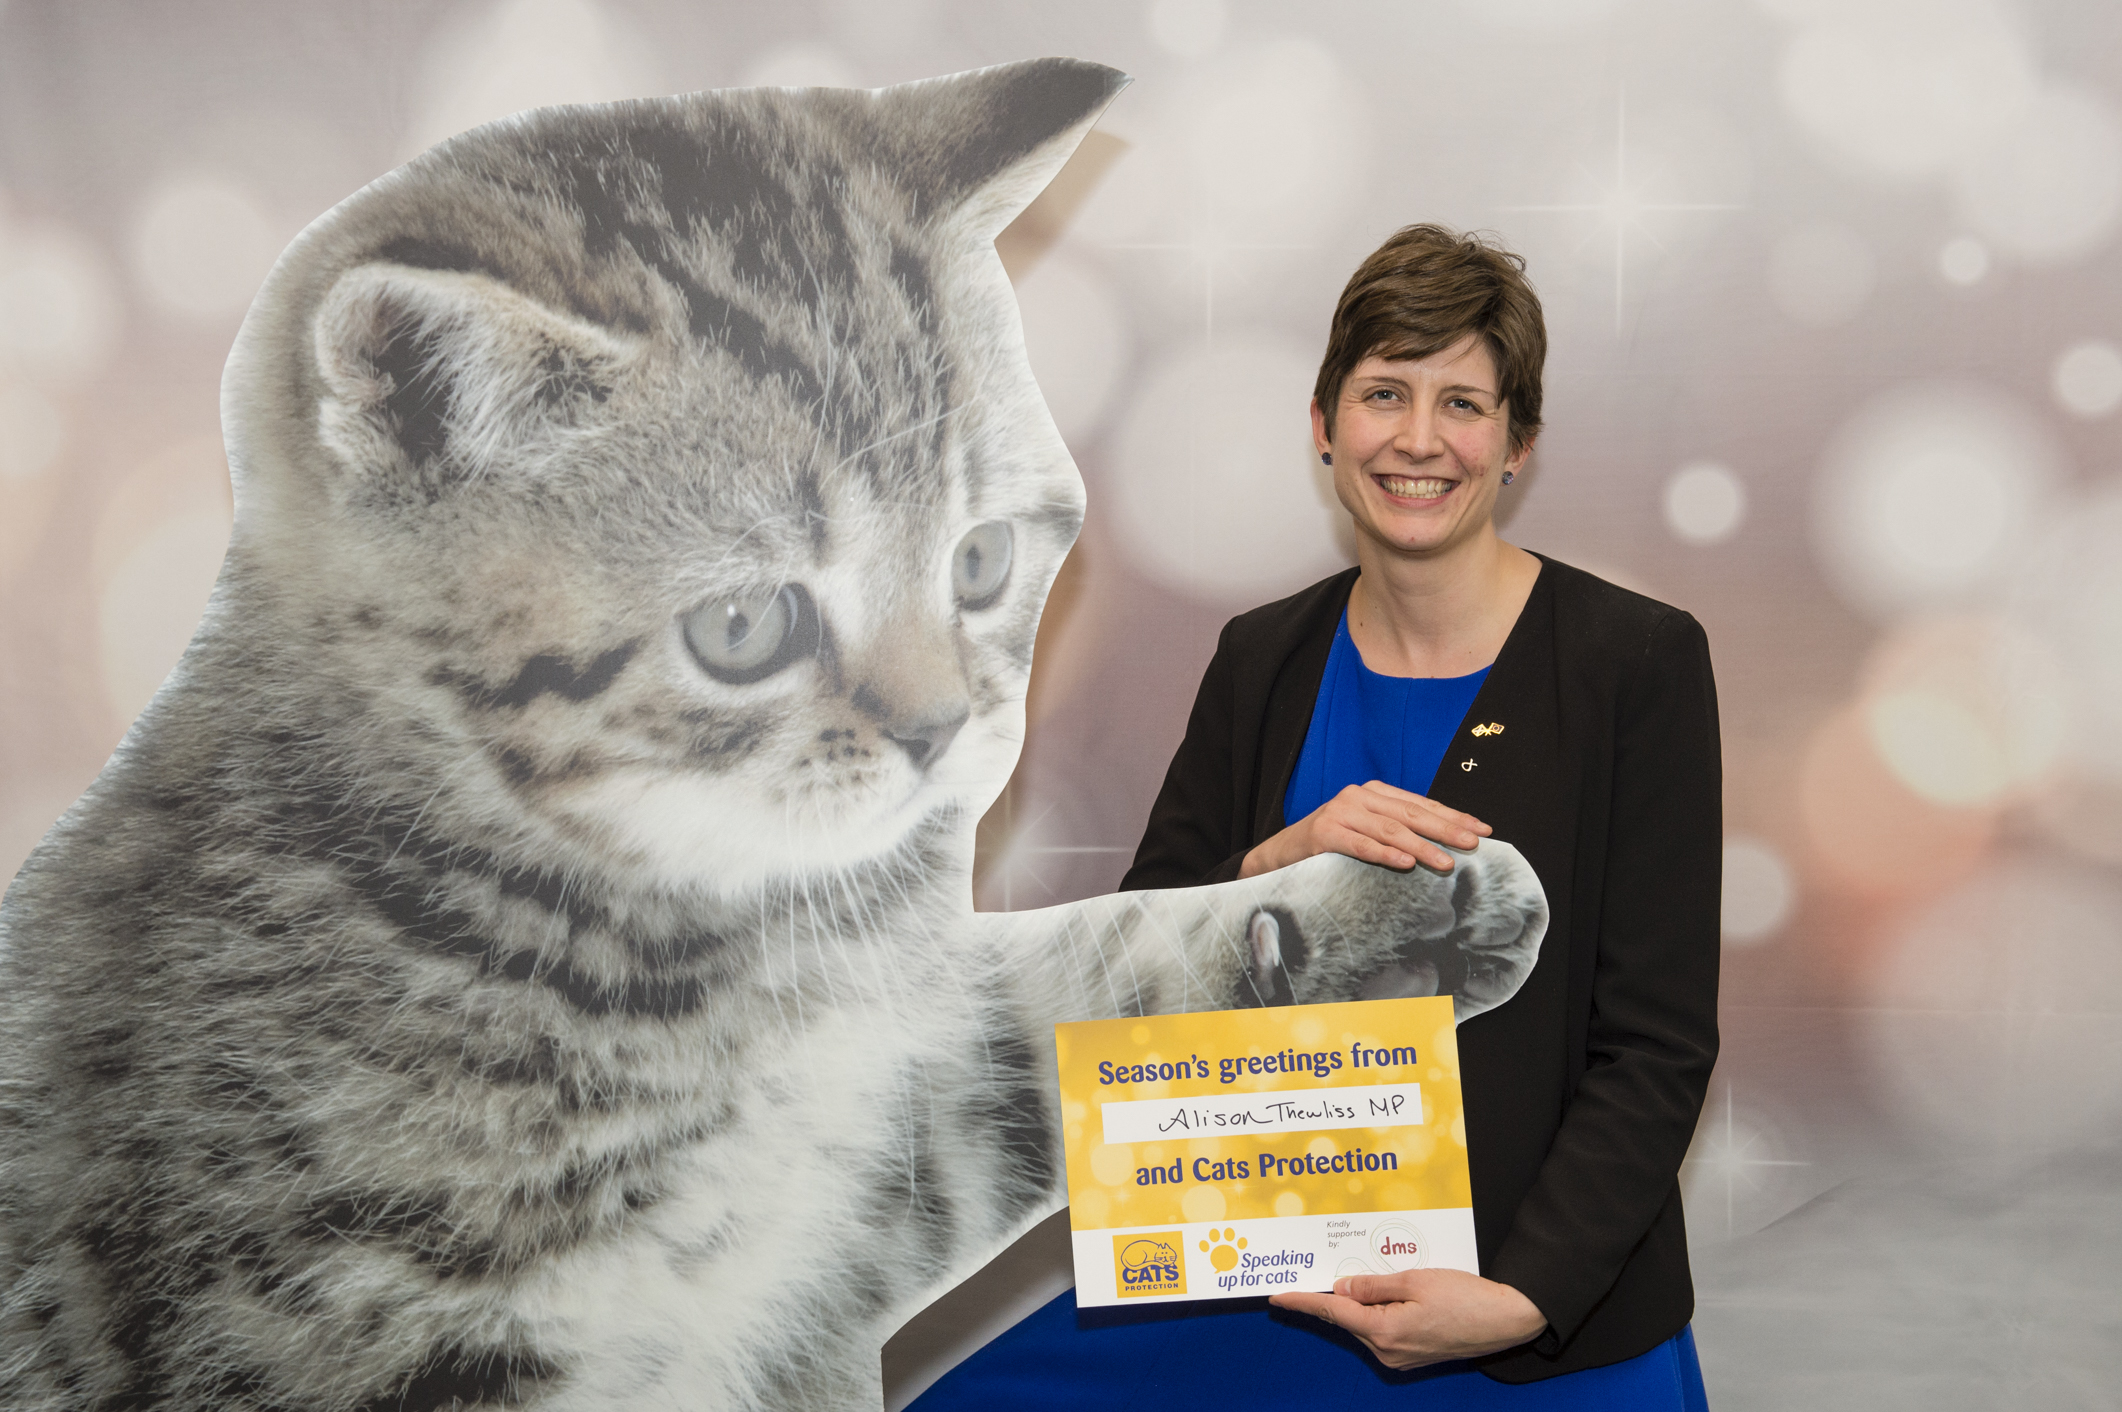 Alison Thewliss MP joins in feline festivities at parliamentary reception